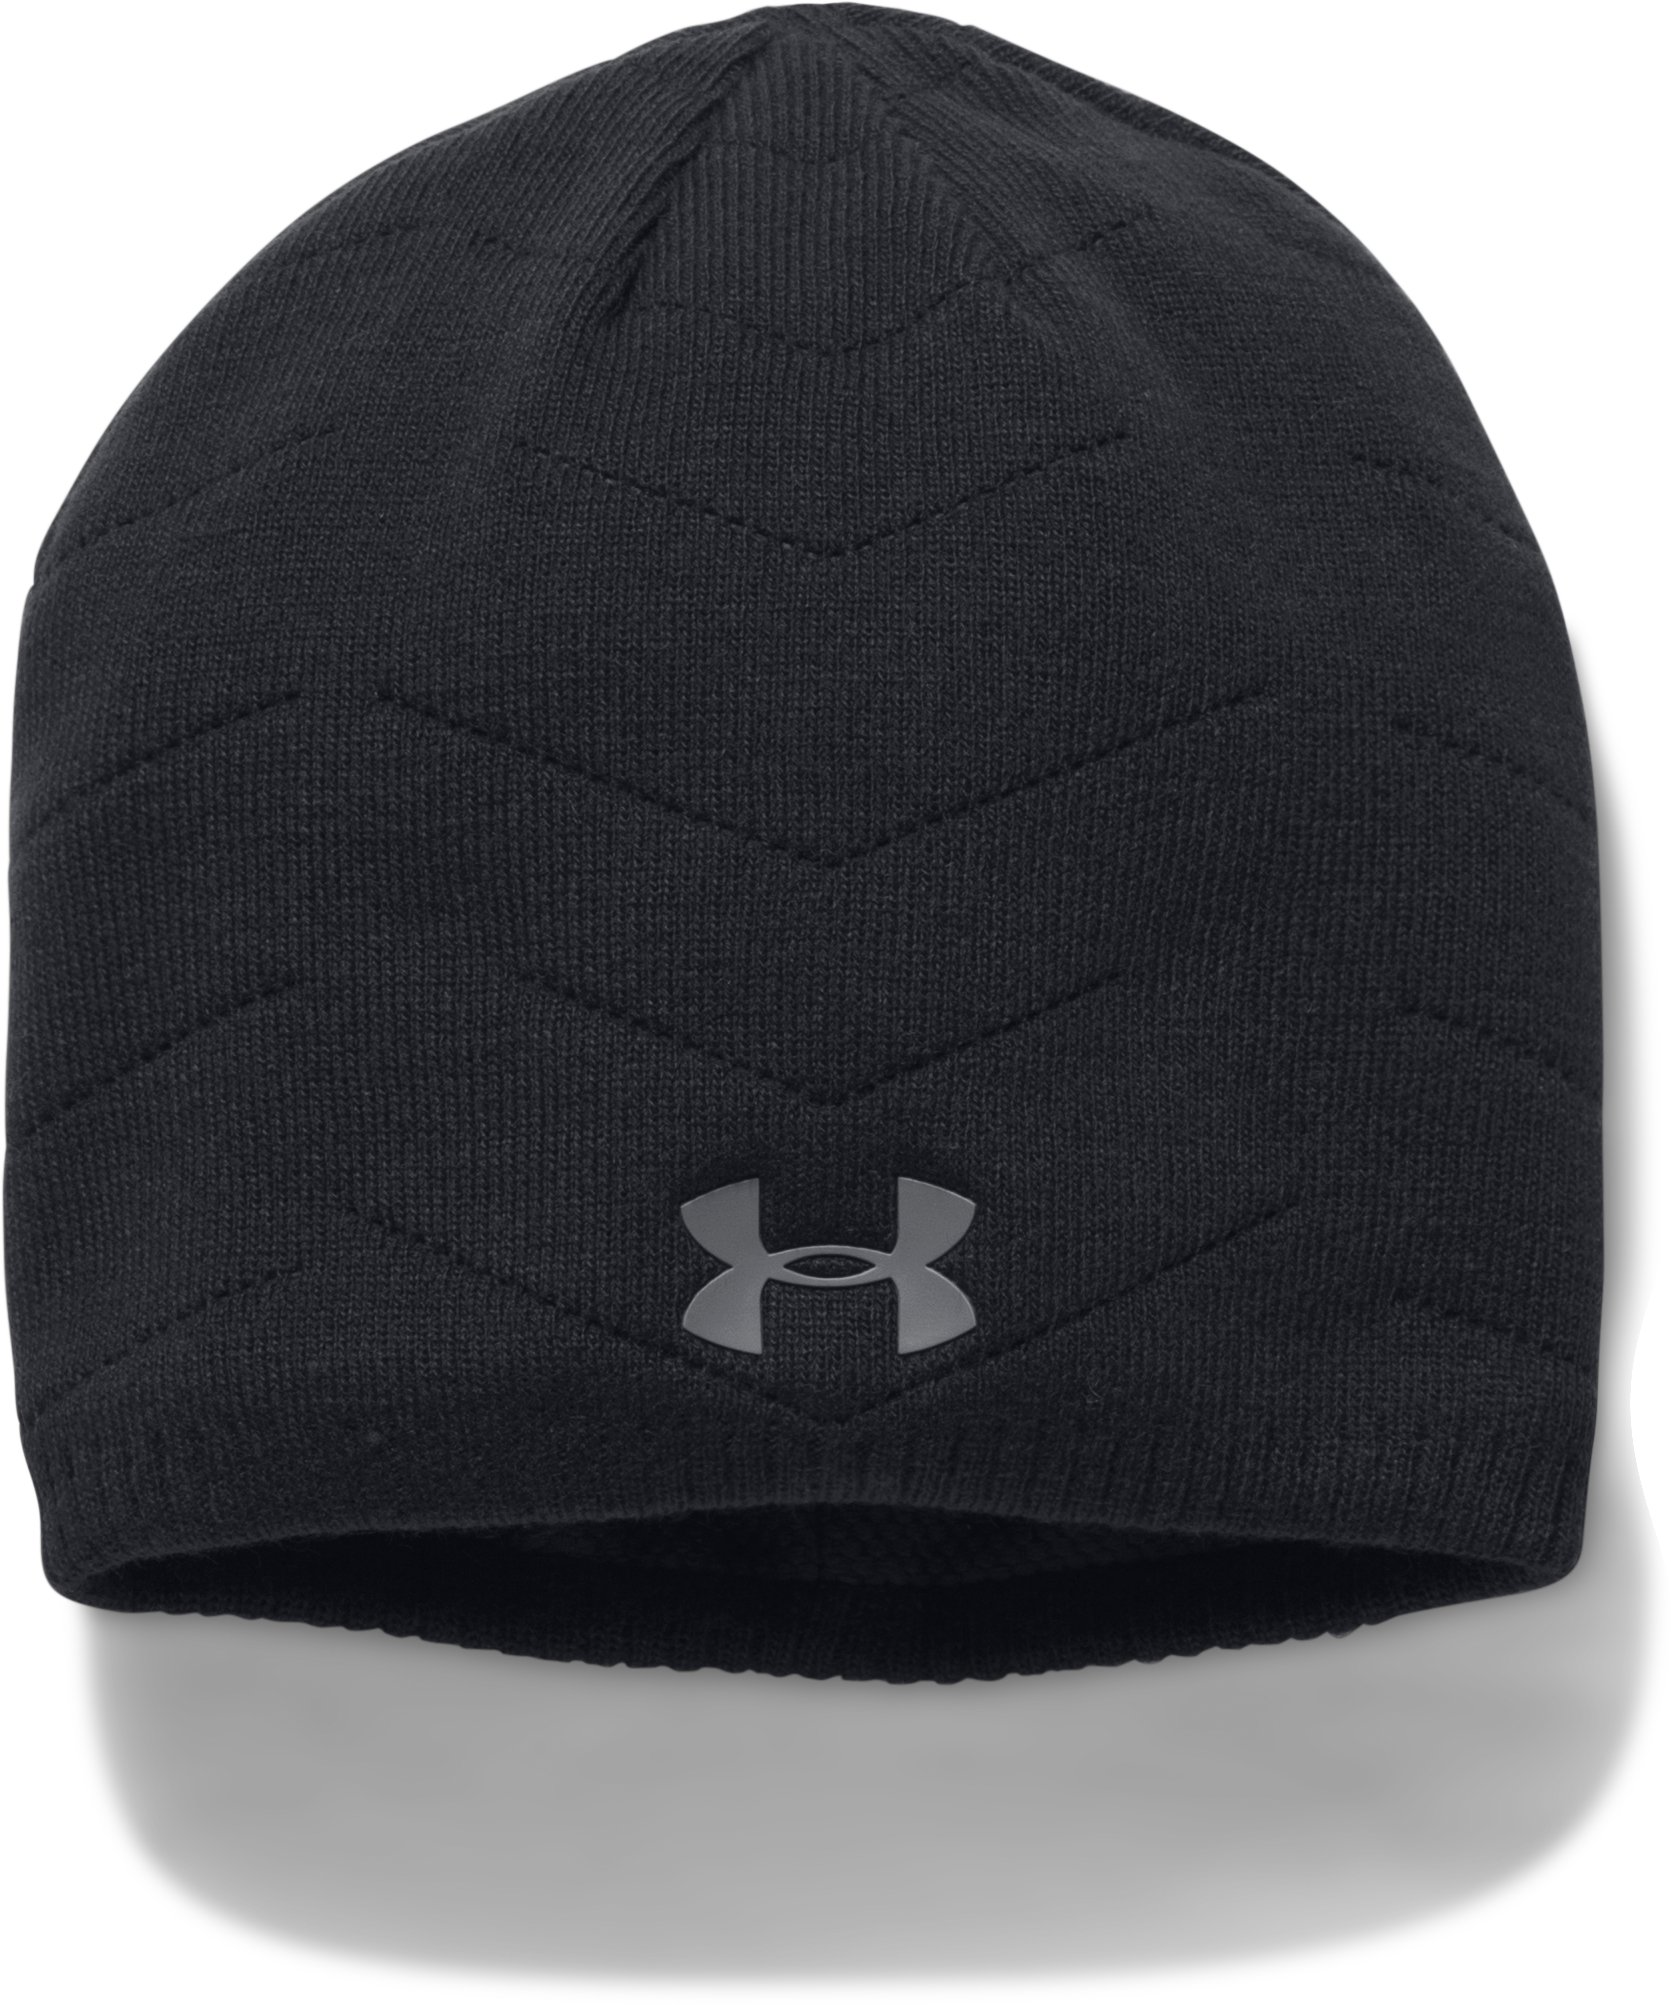 Men's ColdGear® Reactor Beanie, Black